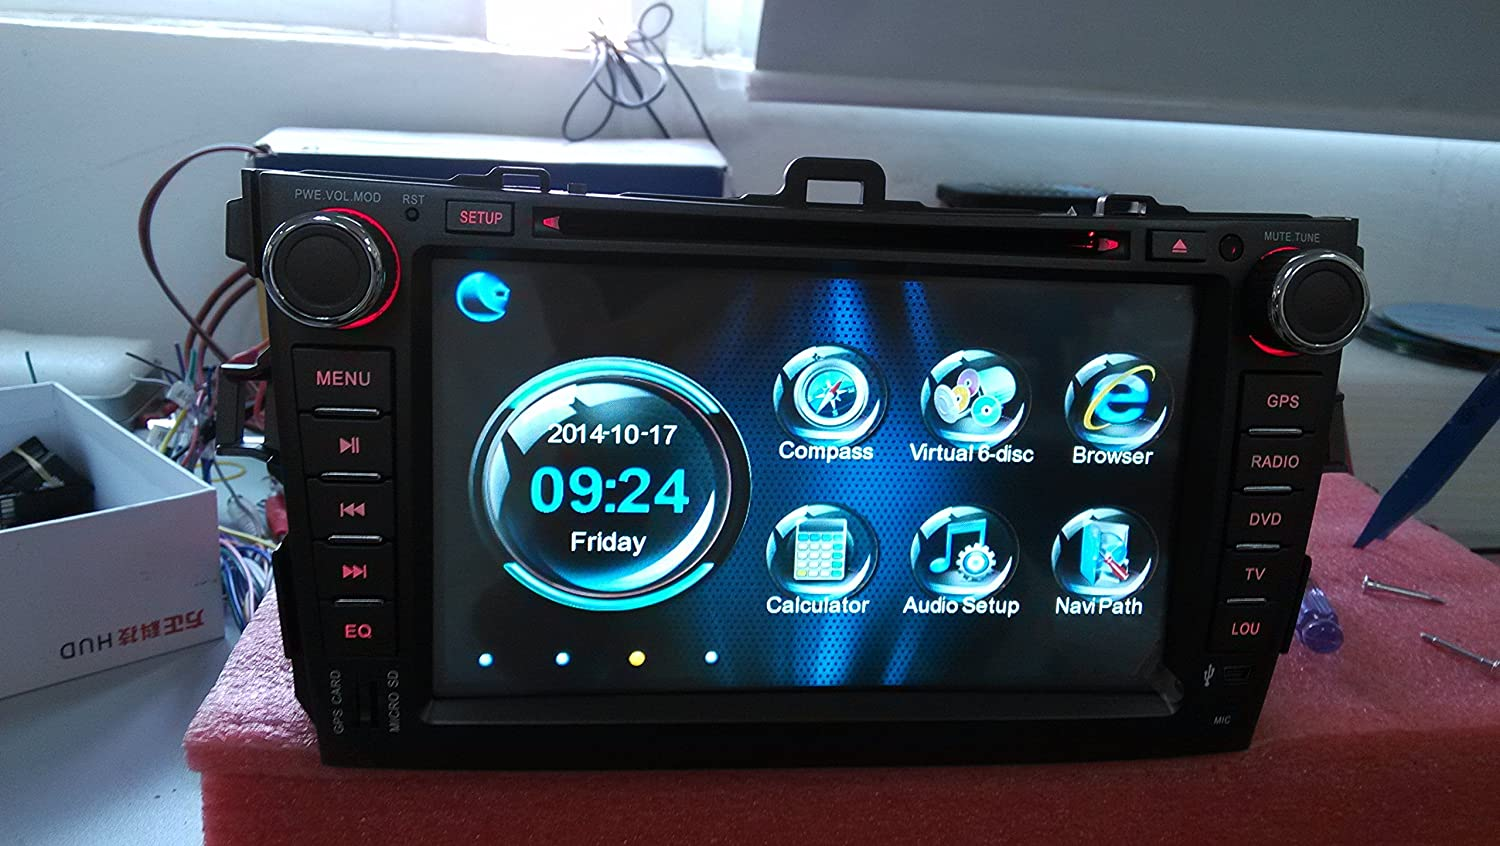 For Toyota Corolla (support year 2007 2008 2009 2010) with 3G WIFI Multi-Touch Screen Car DVD GPS Navigation Build-In Bluetooth,Radio with RDS,Analog TV, AUX&USB, iPhone/iPod Controls, Steering Wheel Control, Free Map автомобильный dvd плеер oem dvd chevrolet cruze 2008 2009 2010 2011 gps bluetooth bt tv